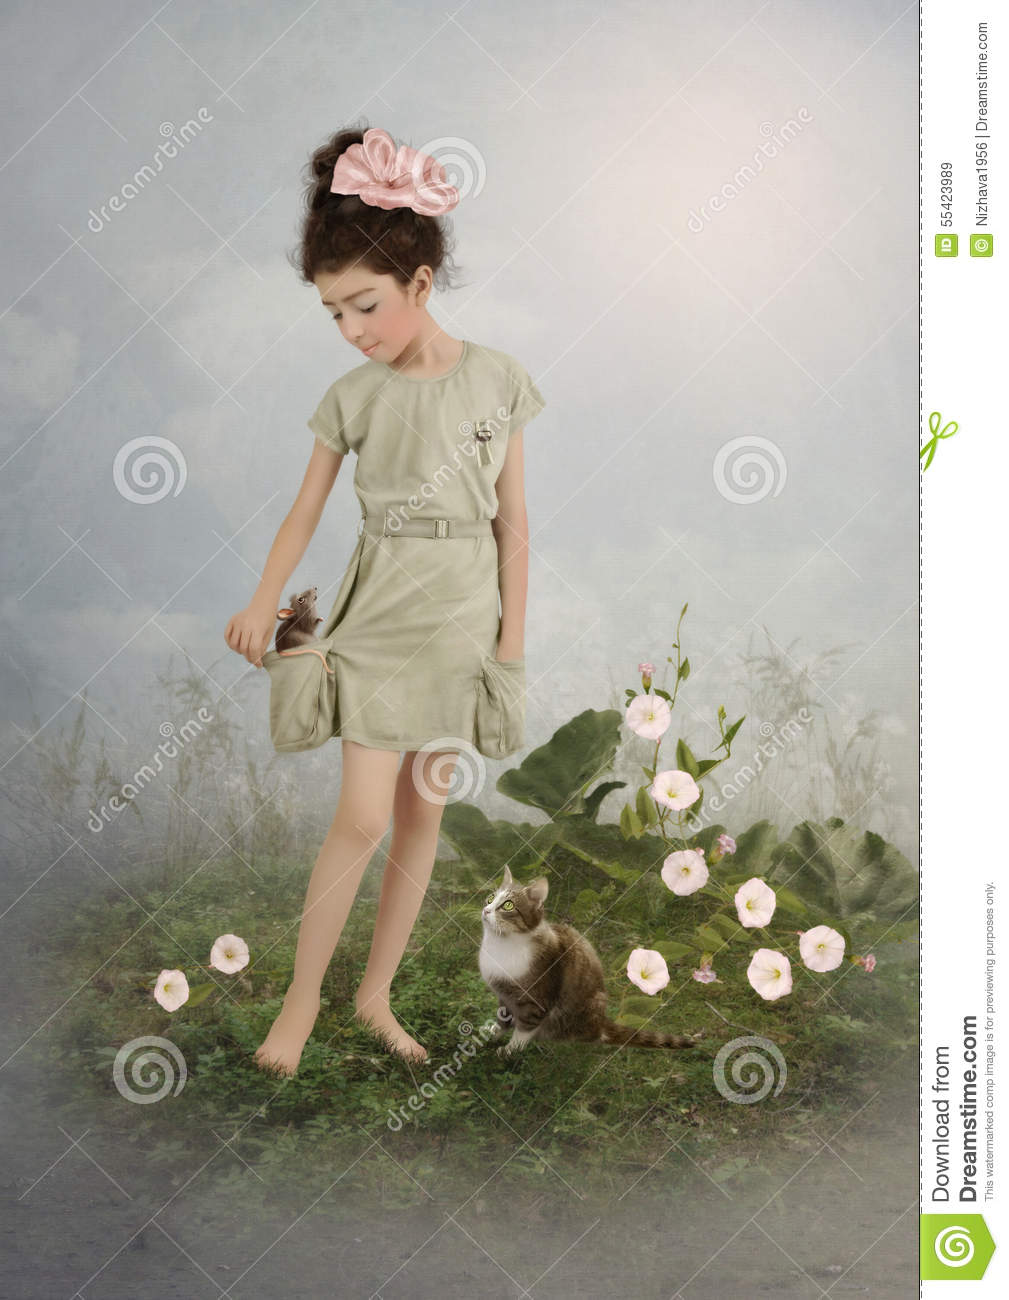 Girl, mouse and cat